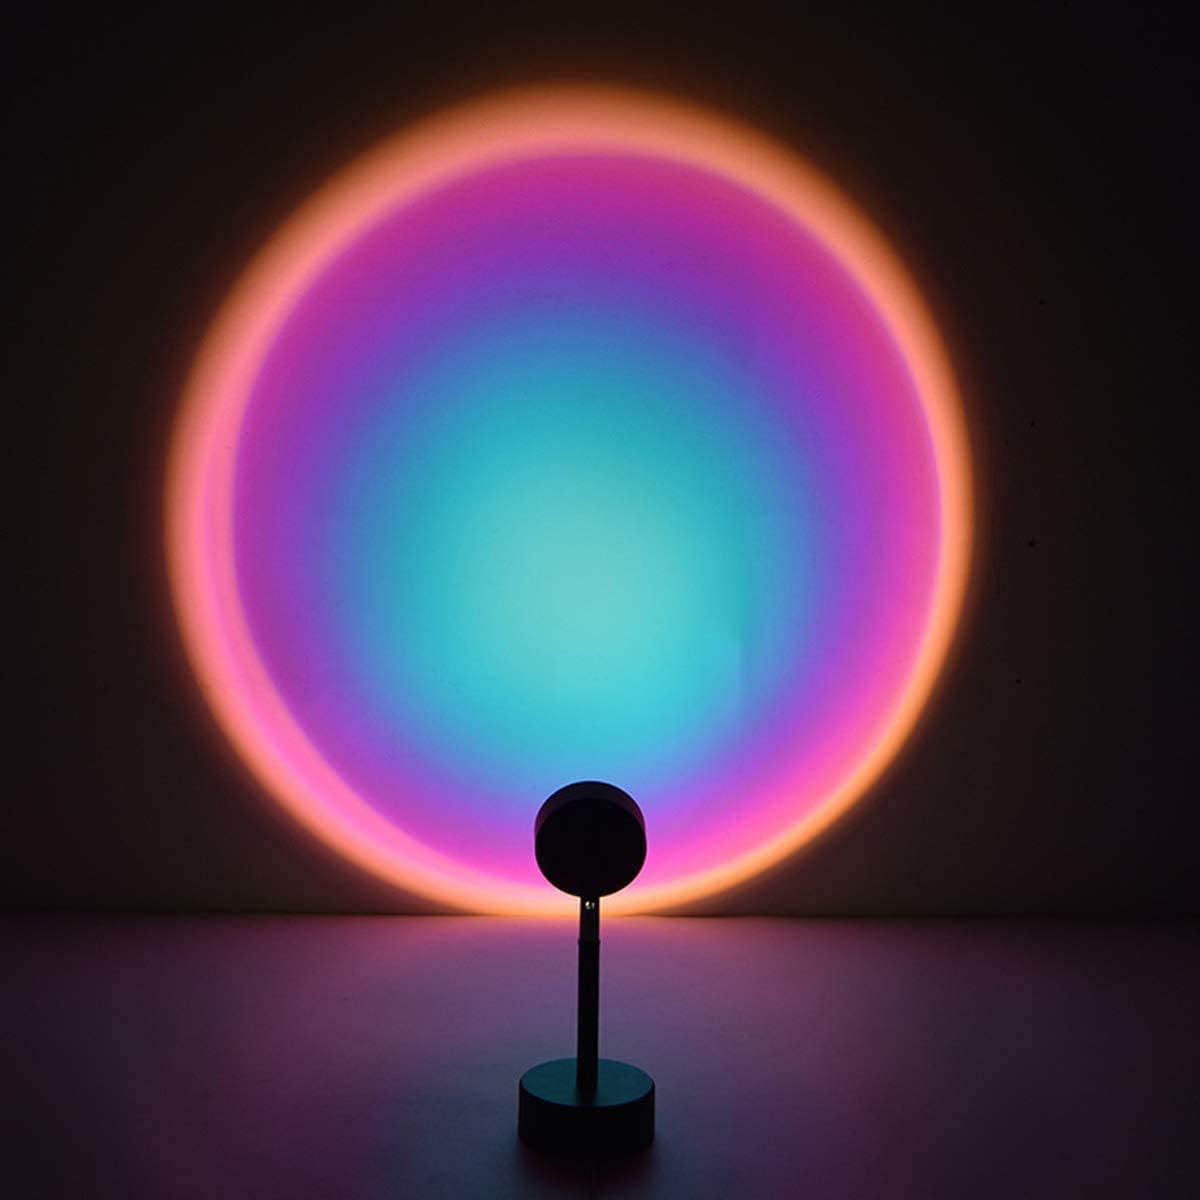 Sunset Night Light Projector Led Table Lamp,180 Degree Rotation Rainbow Projection Lamp,USB Charging,Romantic Led Light for Kids Adults Home Party Living Room Bedroom Decor (Rainbow 4)